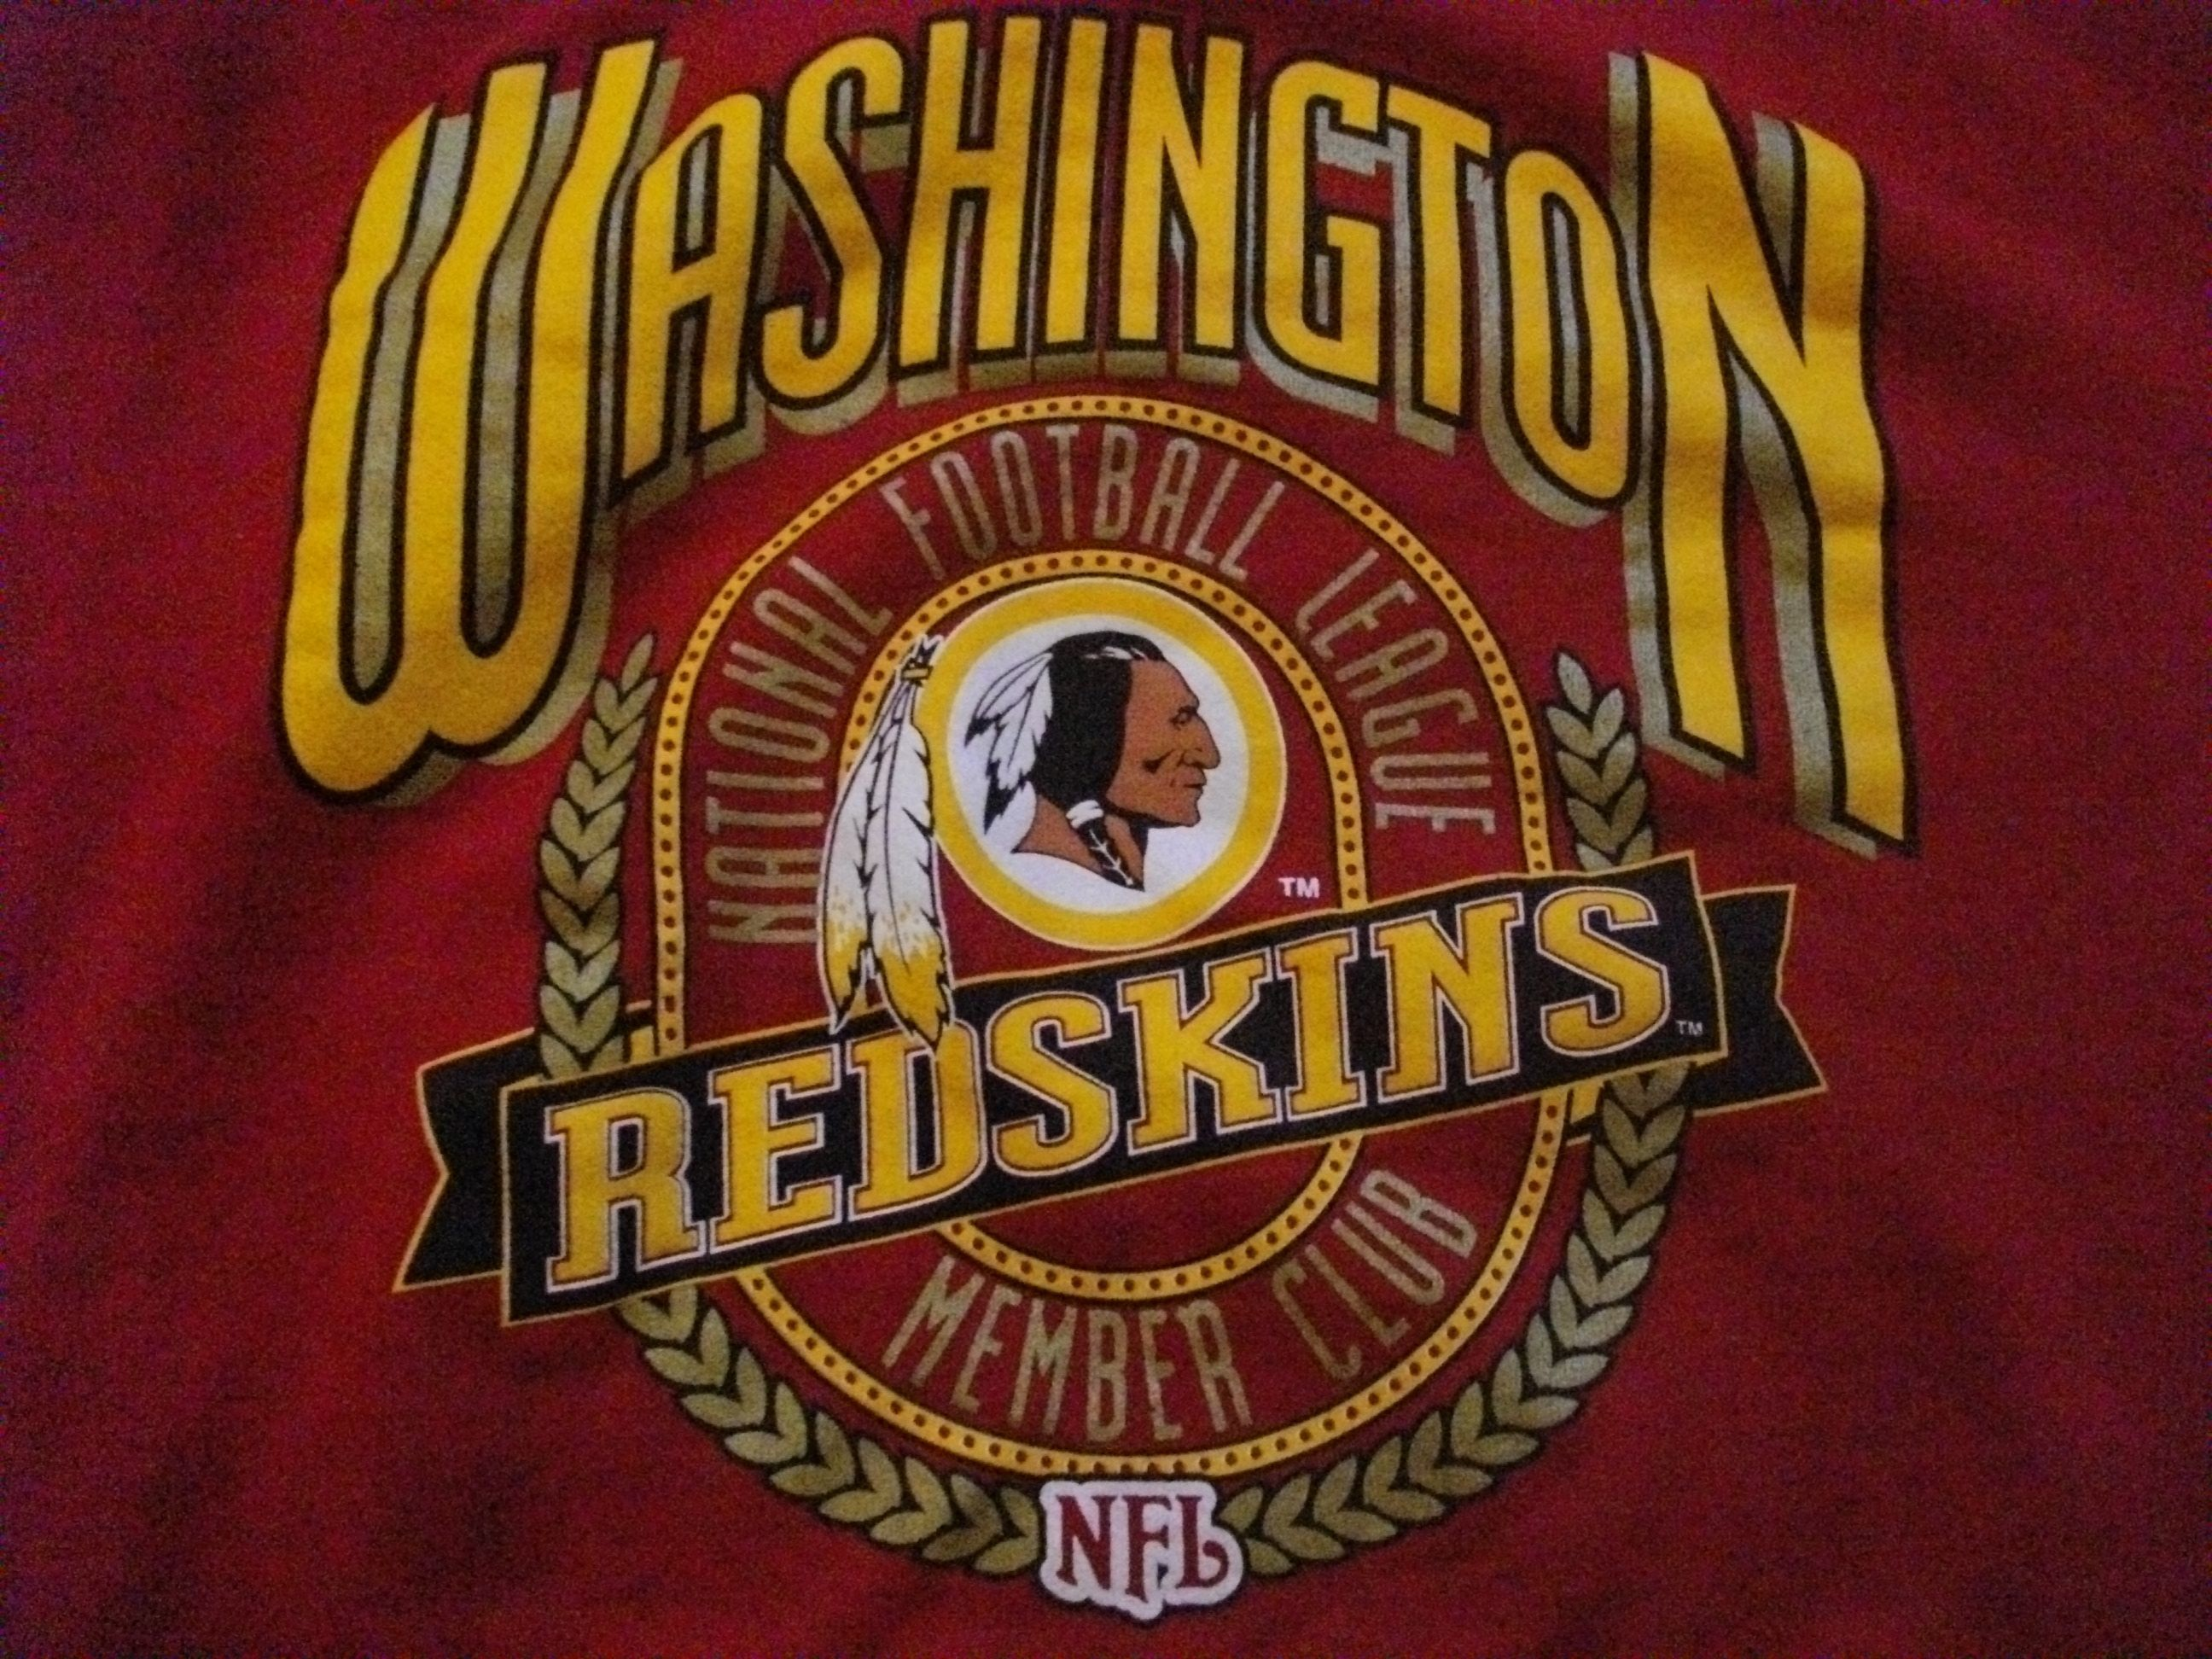 2592x1944 Redskins wallpaper for ipad